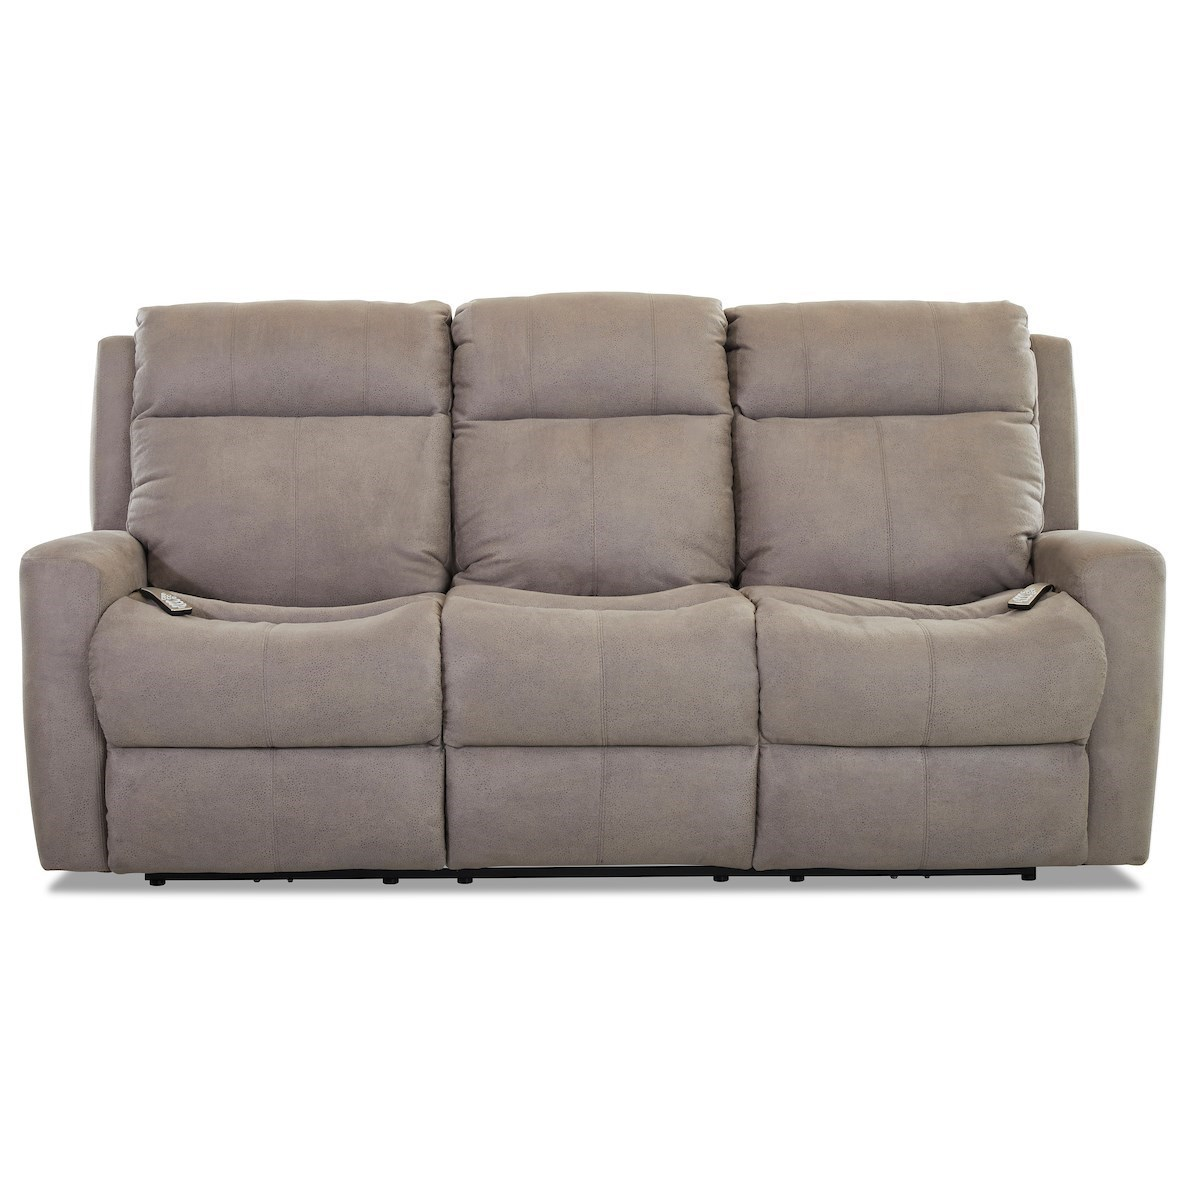 Brooks Power Reclining Sofa w/ Pwr Headrests by Klaussner at Johnny Janosik